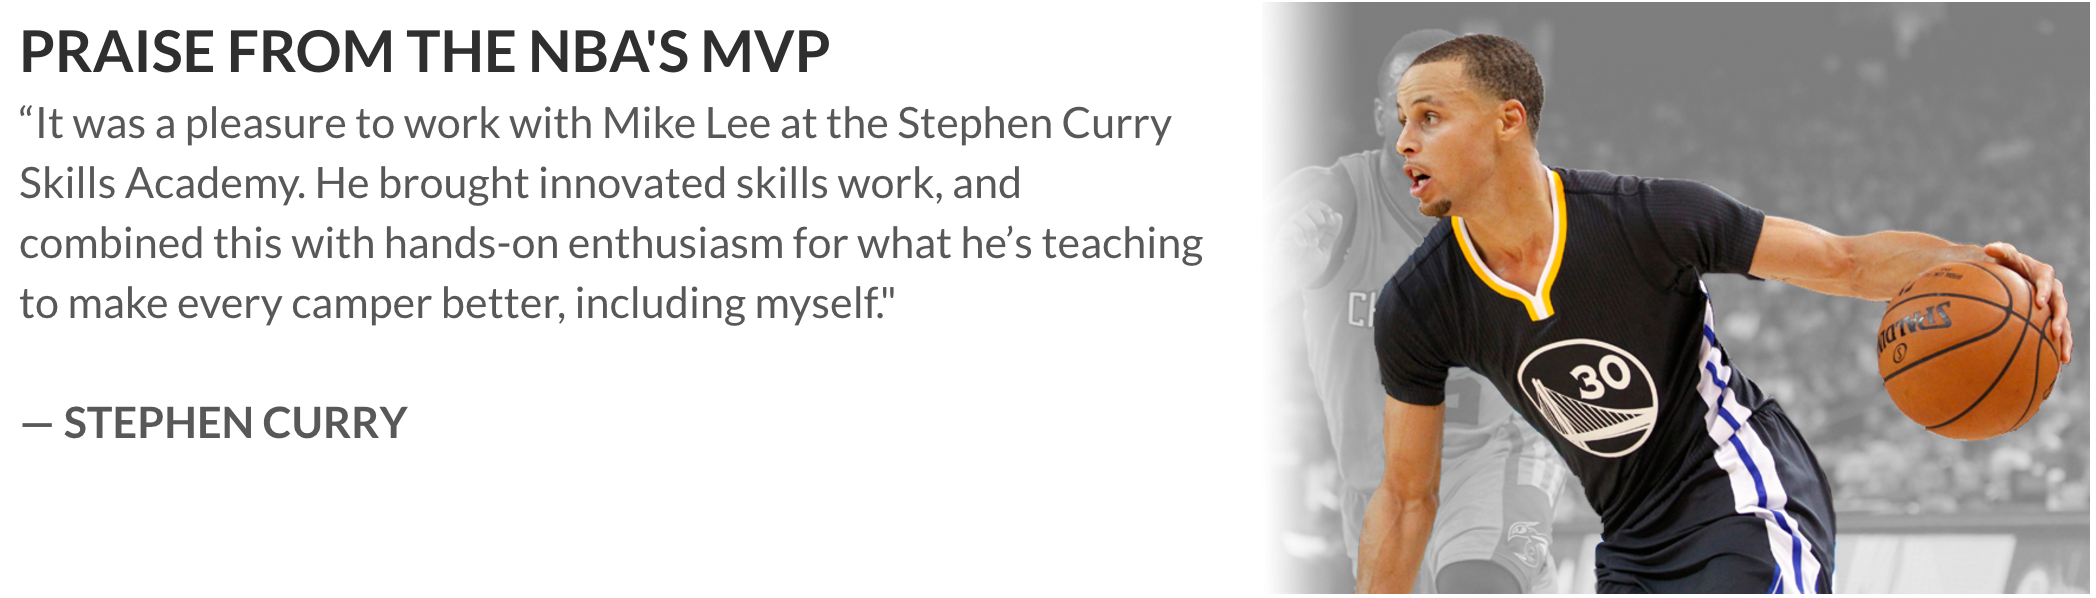 stephen curry mike lee testimonial